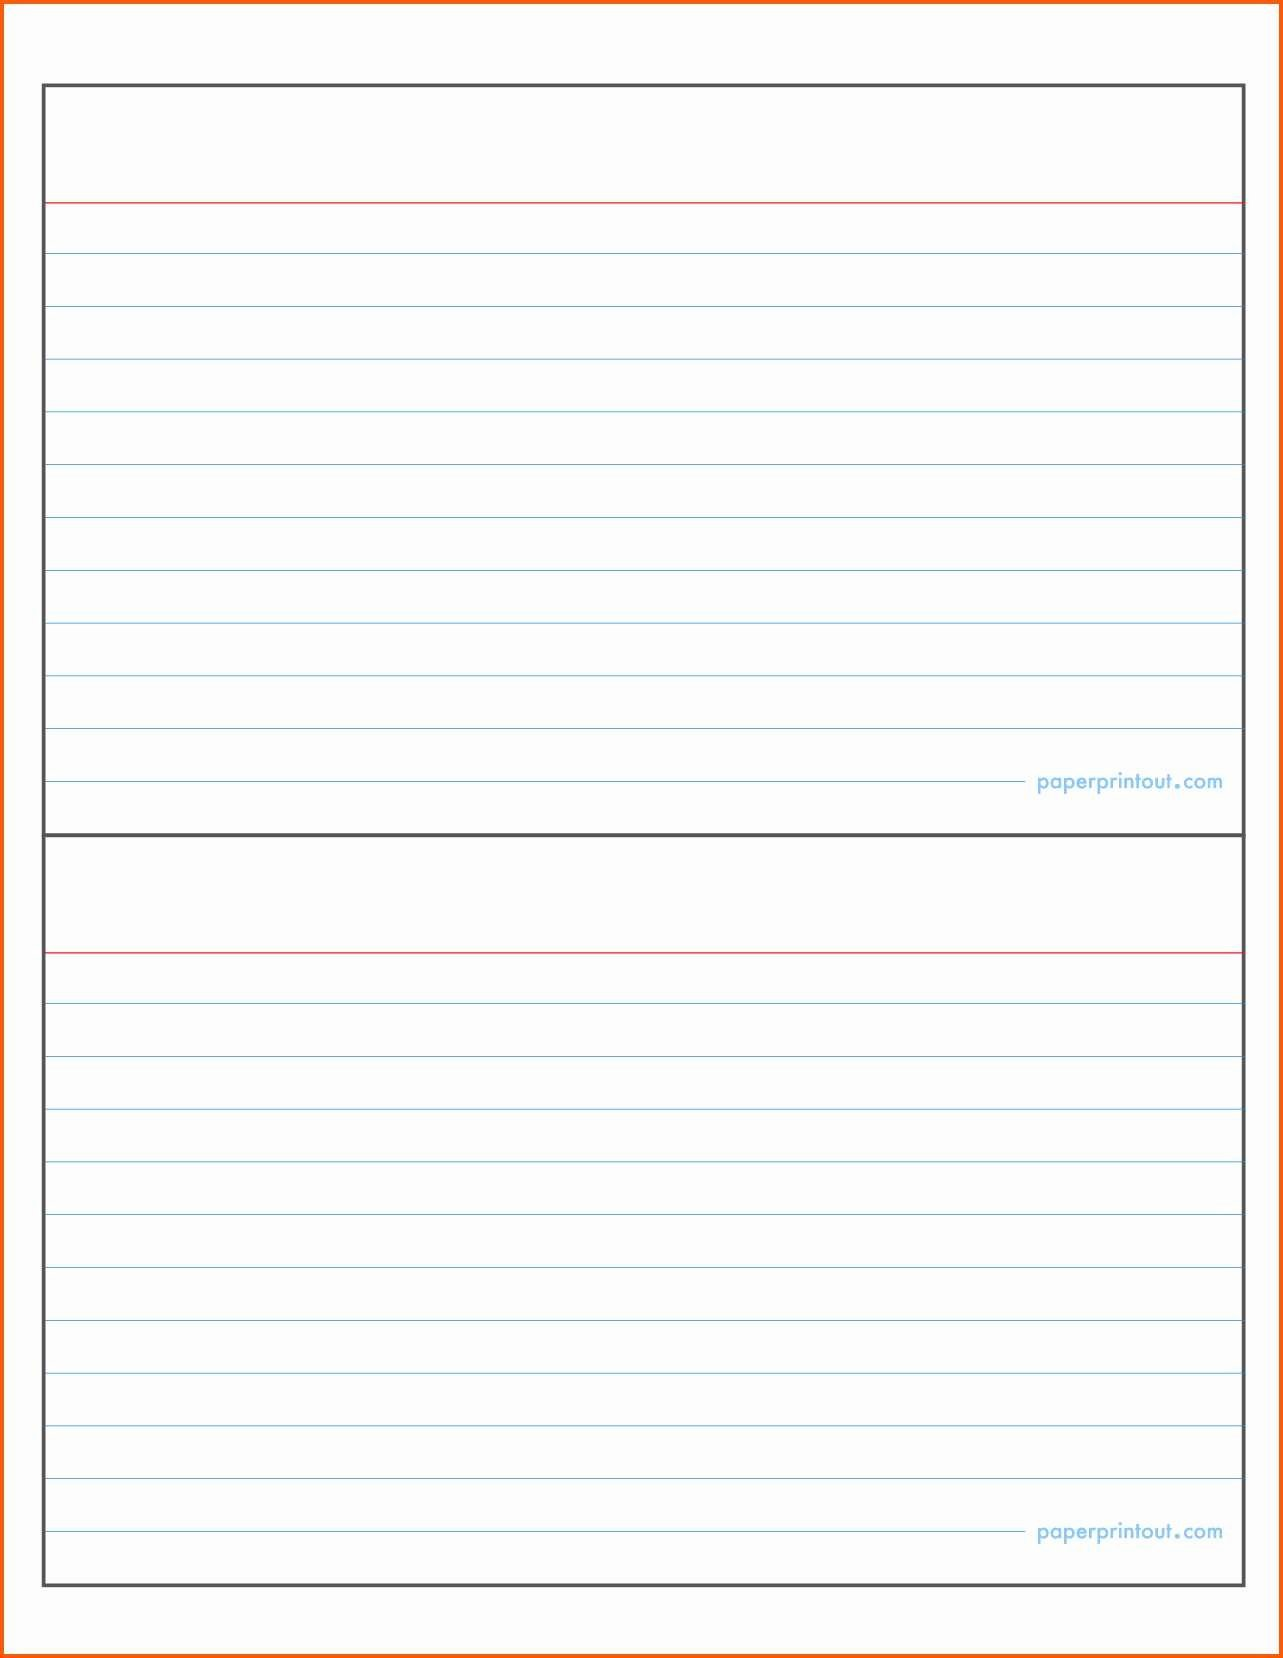 4x6 Card Template Word Unique New 3x5 Index Card Template Google Docs